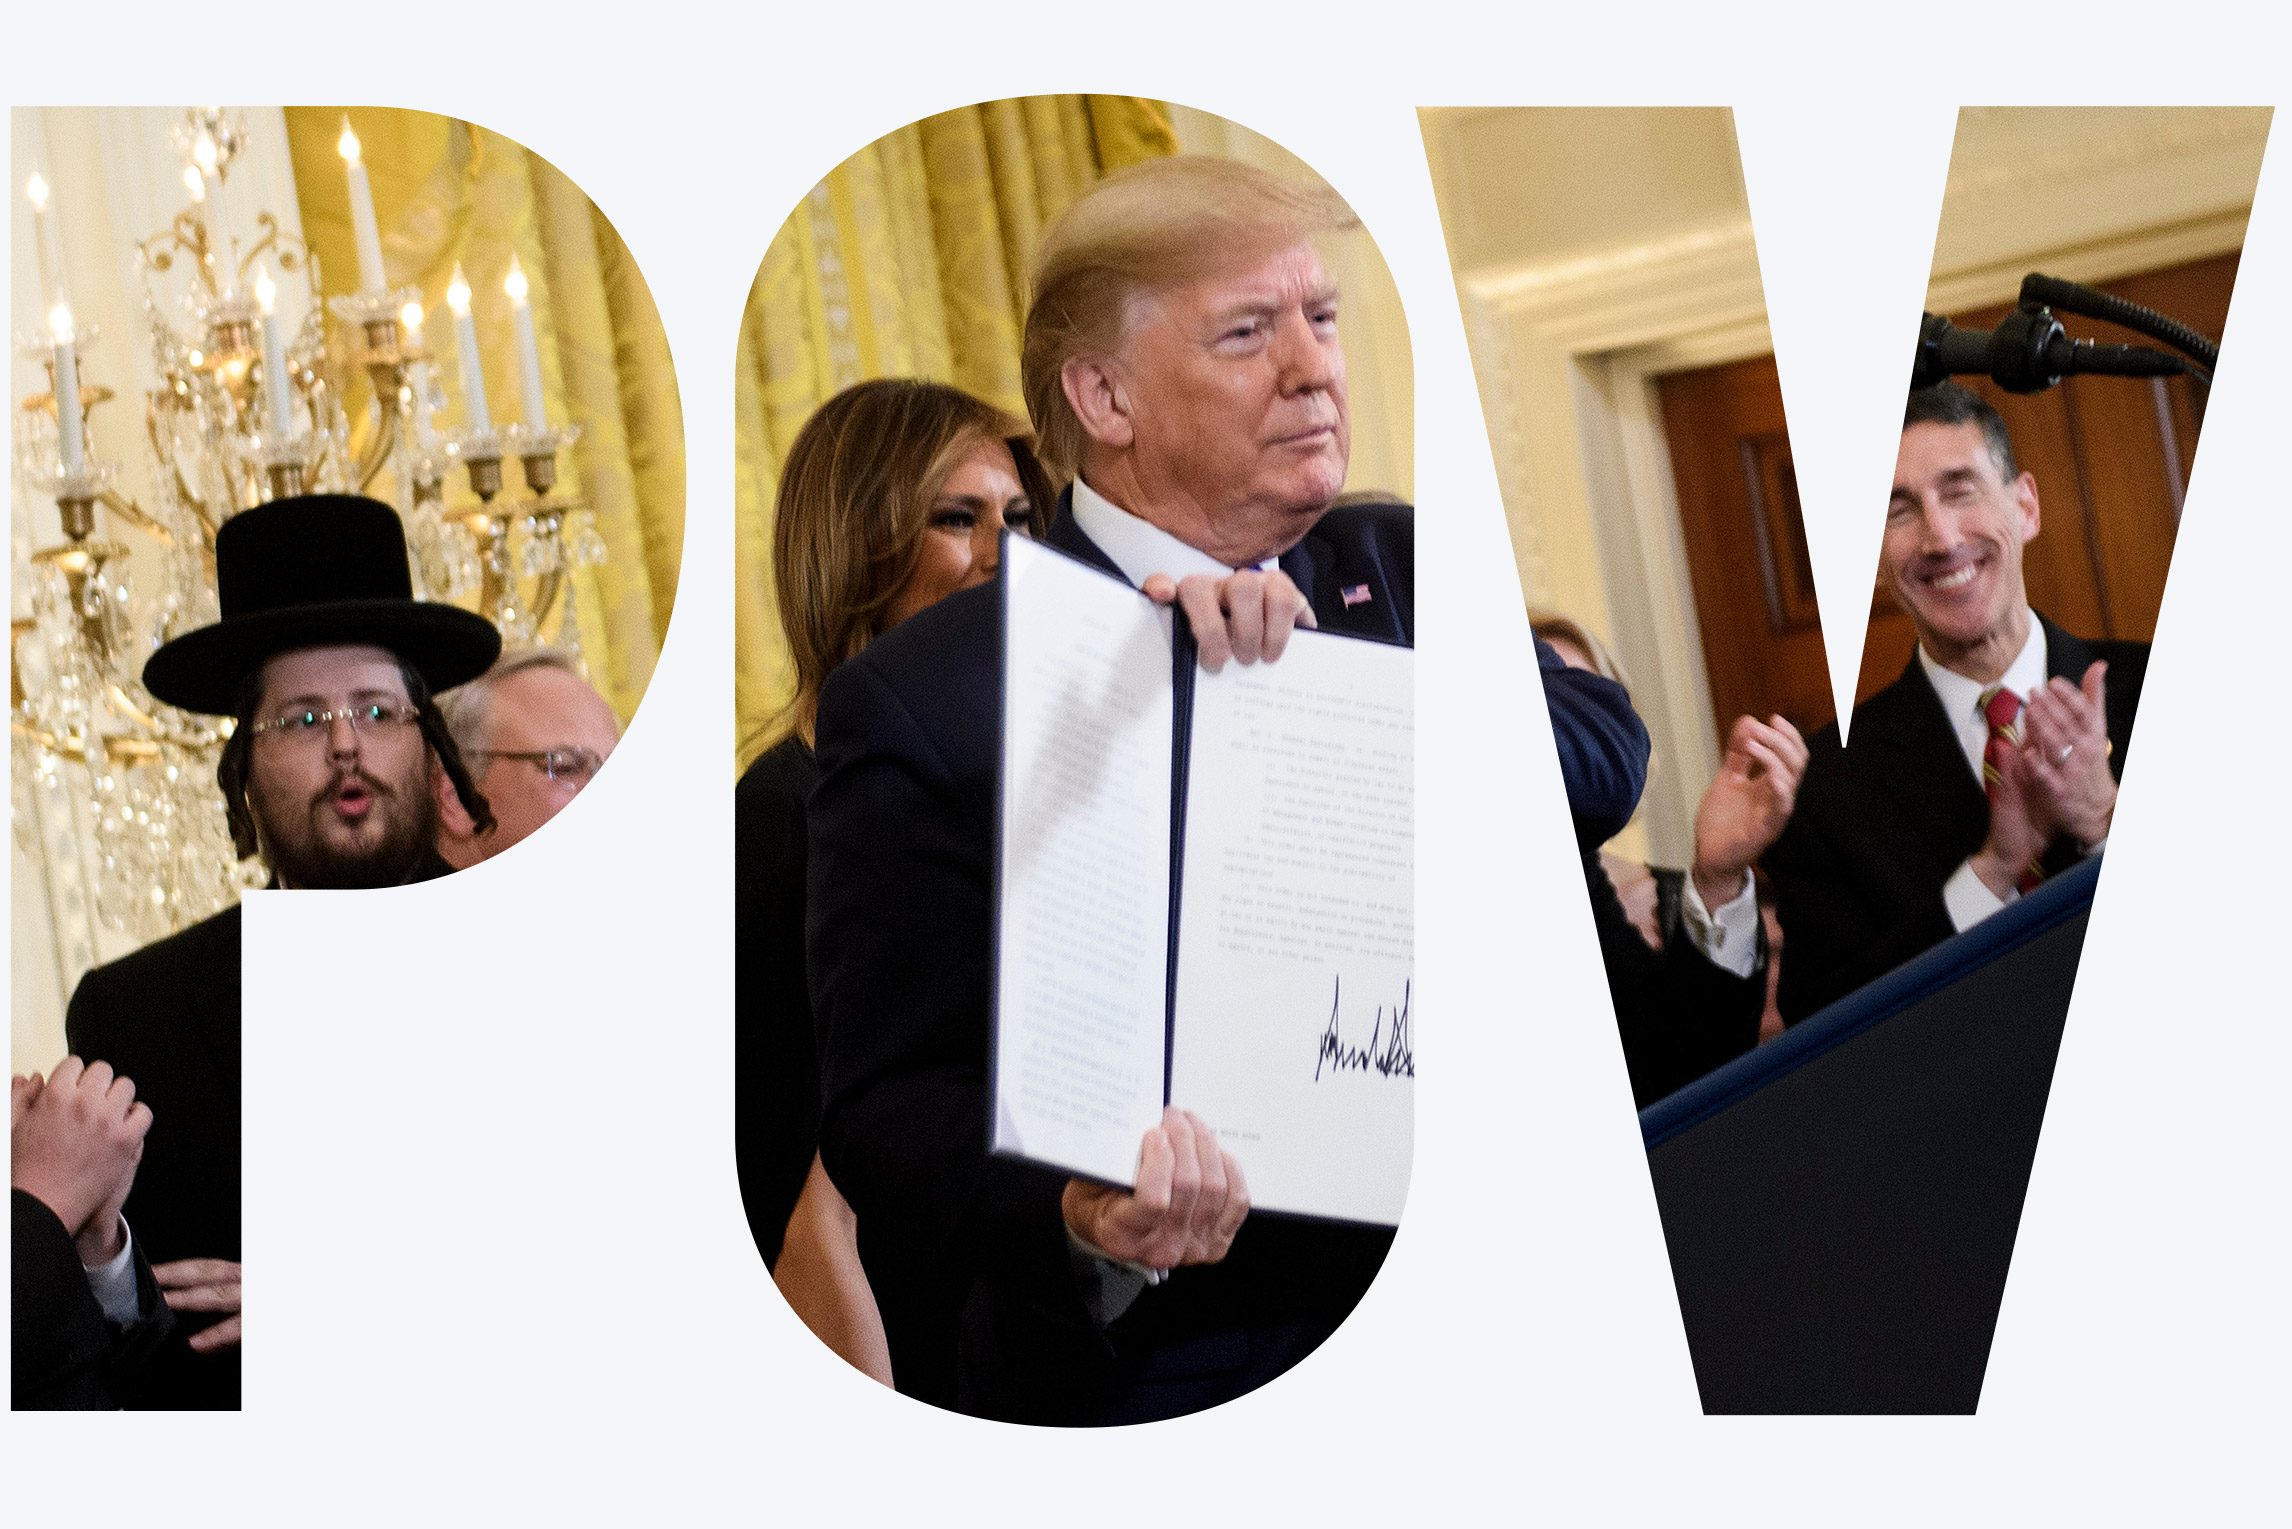 US President Donald Trump shows an executive order regarding anti-semitism during a Hanukkah reception in the East Room of the White House December 11, 2019, in Washington, DC.